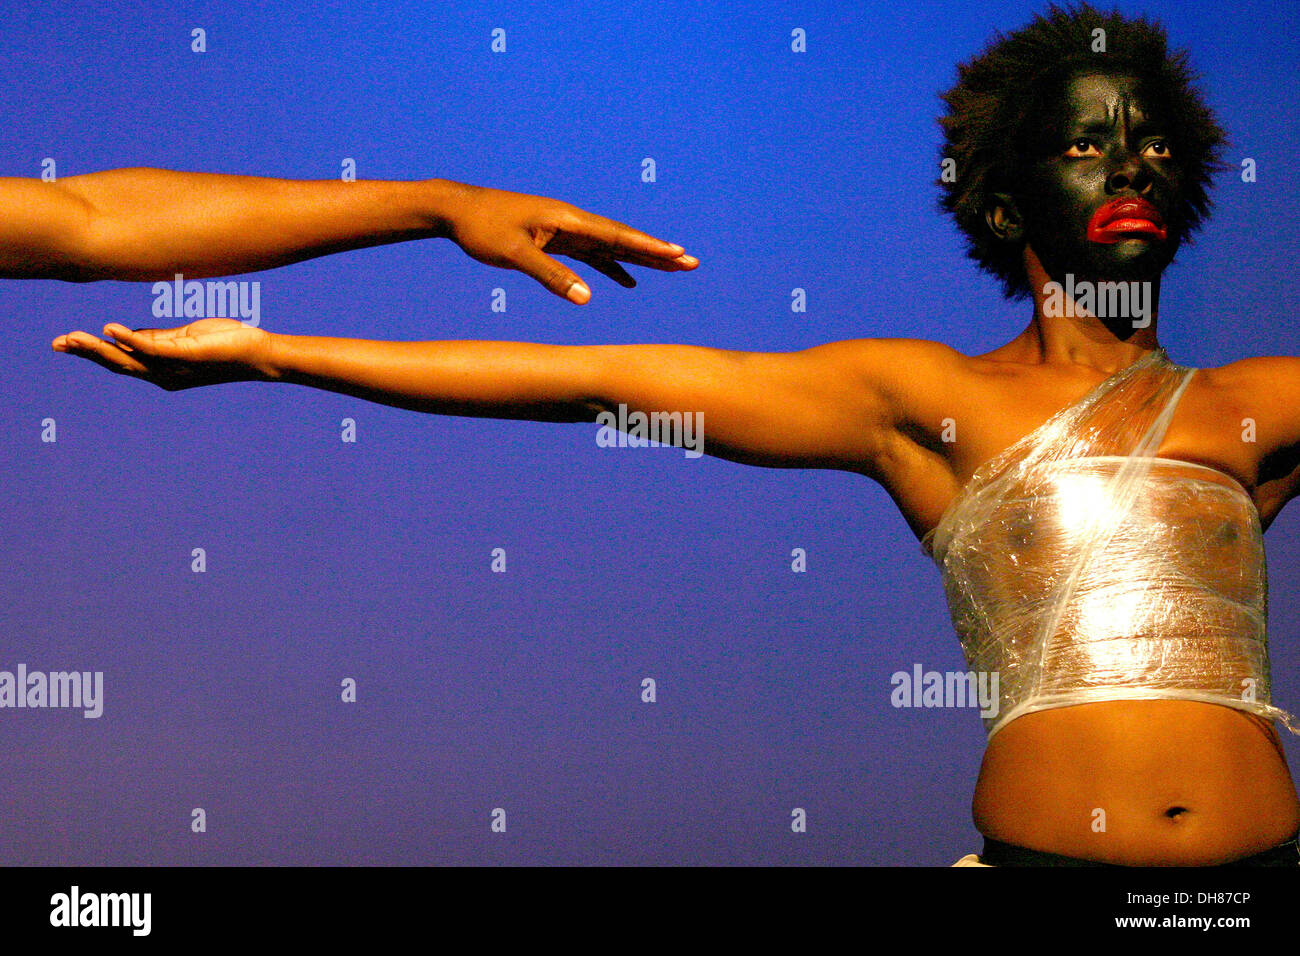 06/03/2004. FNB Dance Umbrella.Programme 9. New Moves.Wits Theatre. Johannesburg, South Africa. 'The show is not over until the - Stock Image